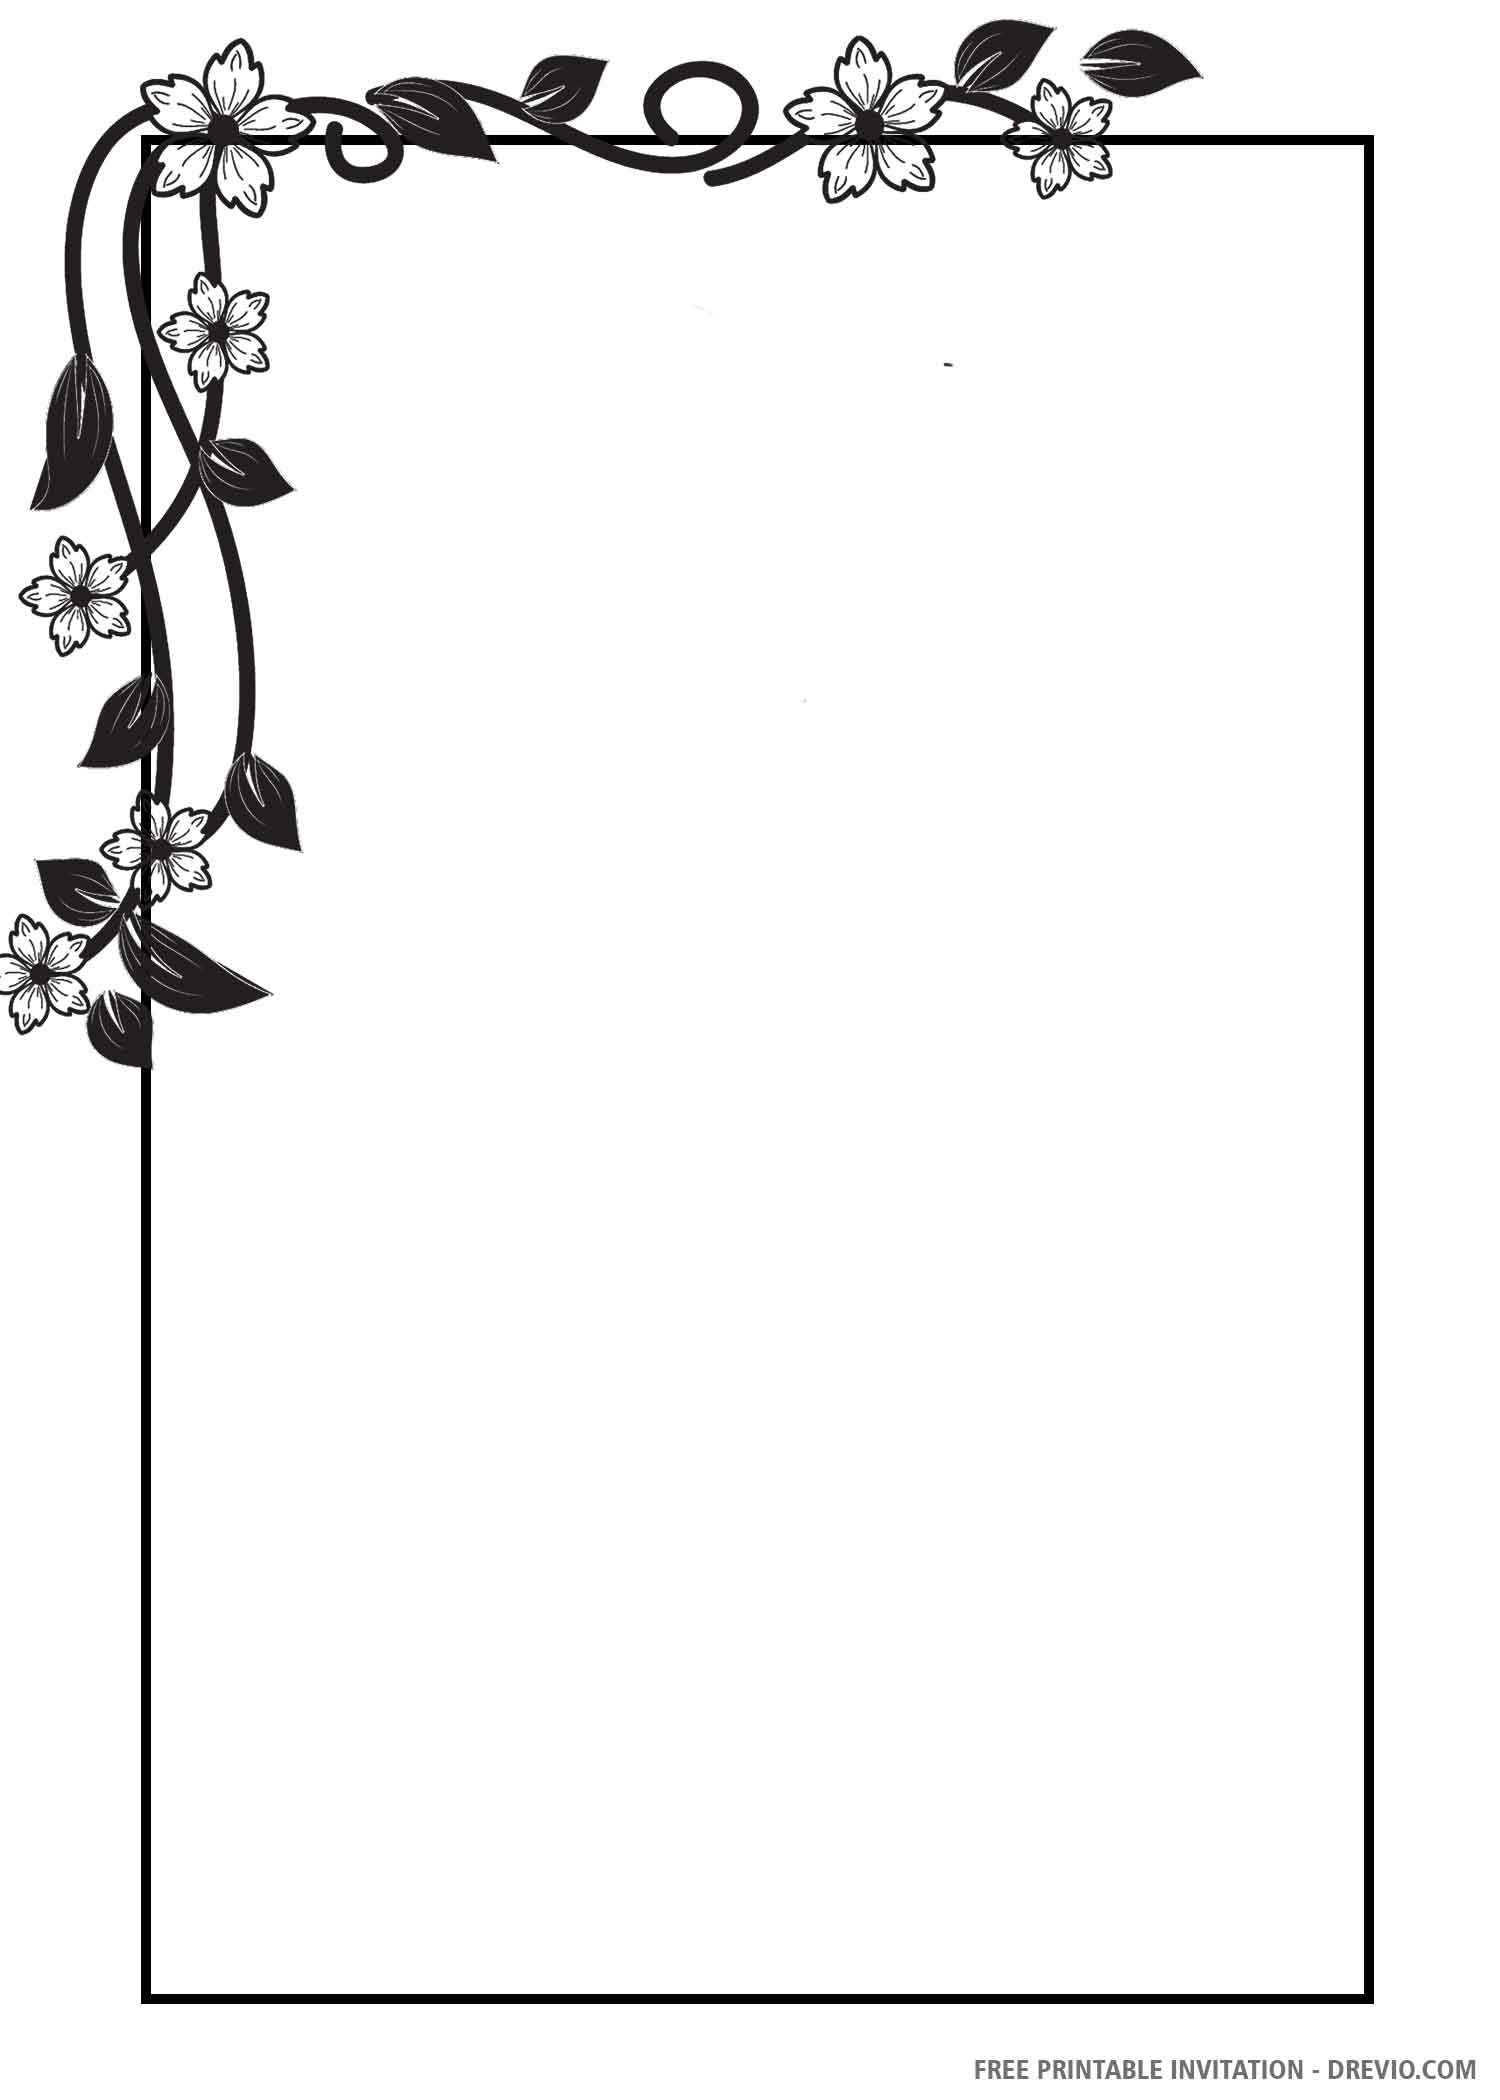 Free Printable Black And White Floral Wedding Invitation Templates Wedding Invitation Templates Floral Wedding Invitations Free Printable Birthday Invitations